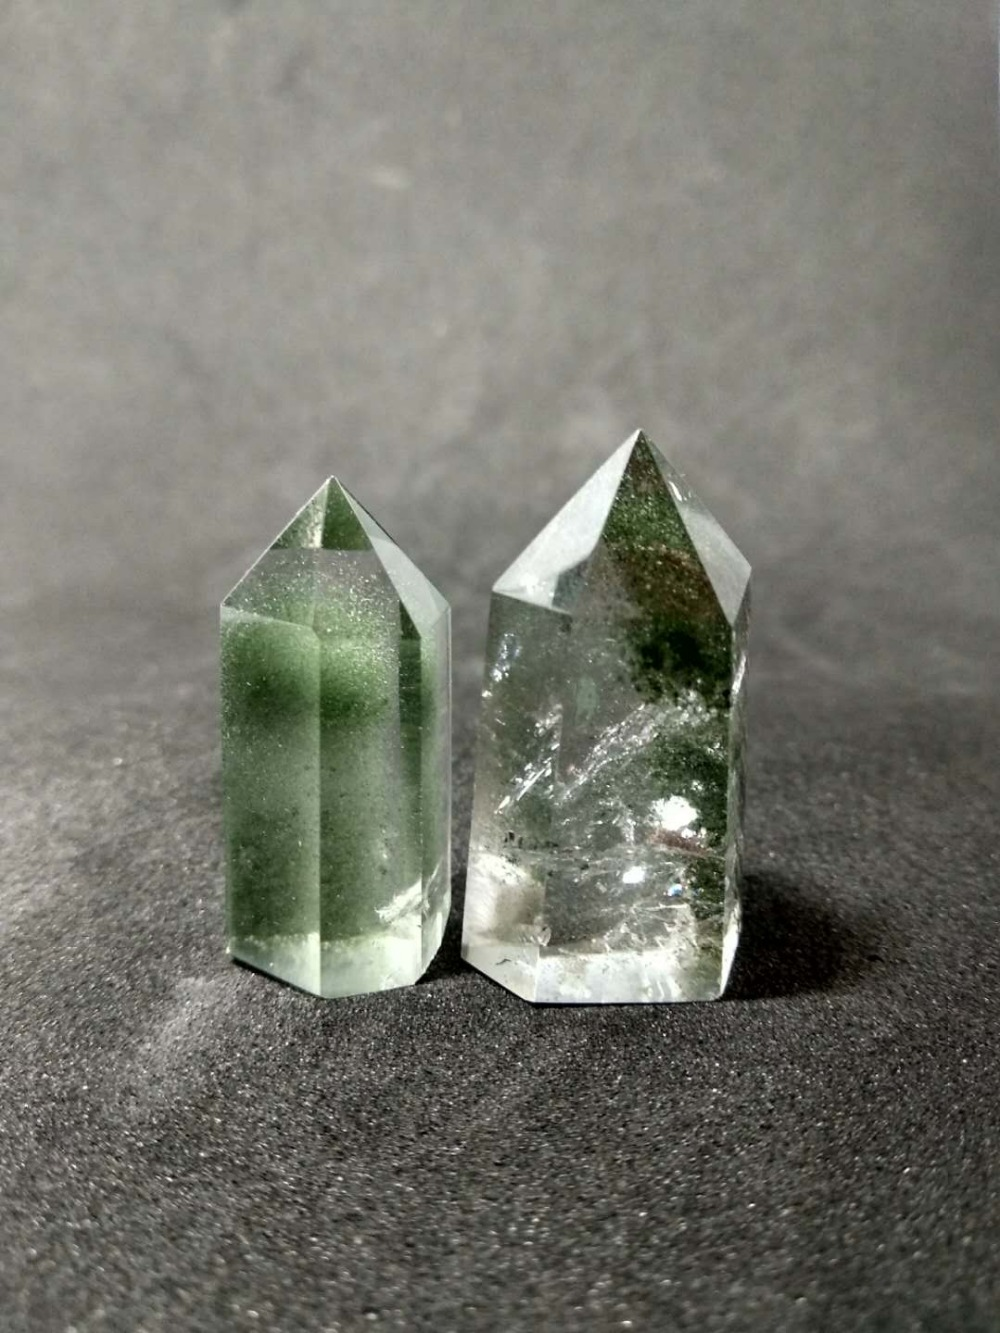 Buy Rare!!! 2pcs Natural Green Phantom Crystal ghost Quartz Chorite-Crystals Point Healing for $42.00 in AliExpress store